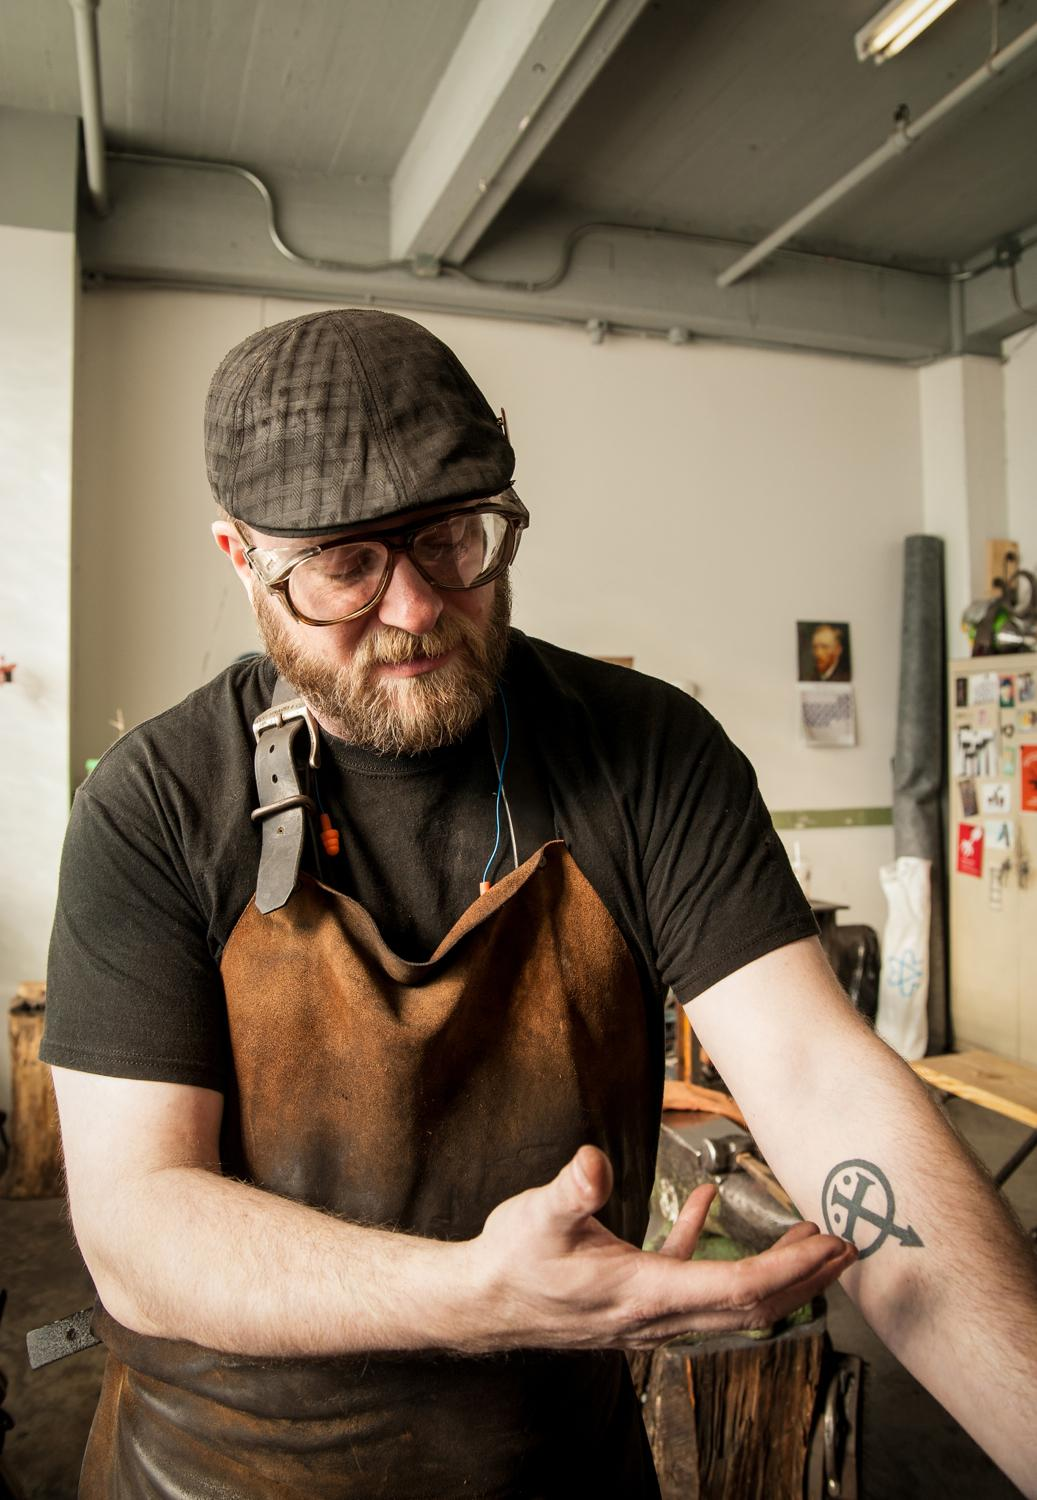 "Artist-blacksmith Mark Gilsdorf explains his tattoo: ""My tattoo combines the alchemist's symbol for iron with the sign for the Roman god Mars, from which the name Mark is derived. So they all kind of blend together to represent me."" / Image: Melissa Doss Sliney"